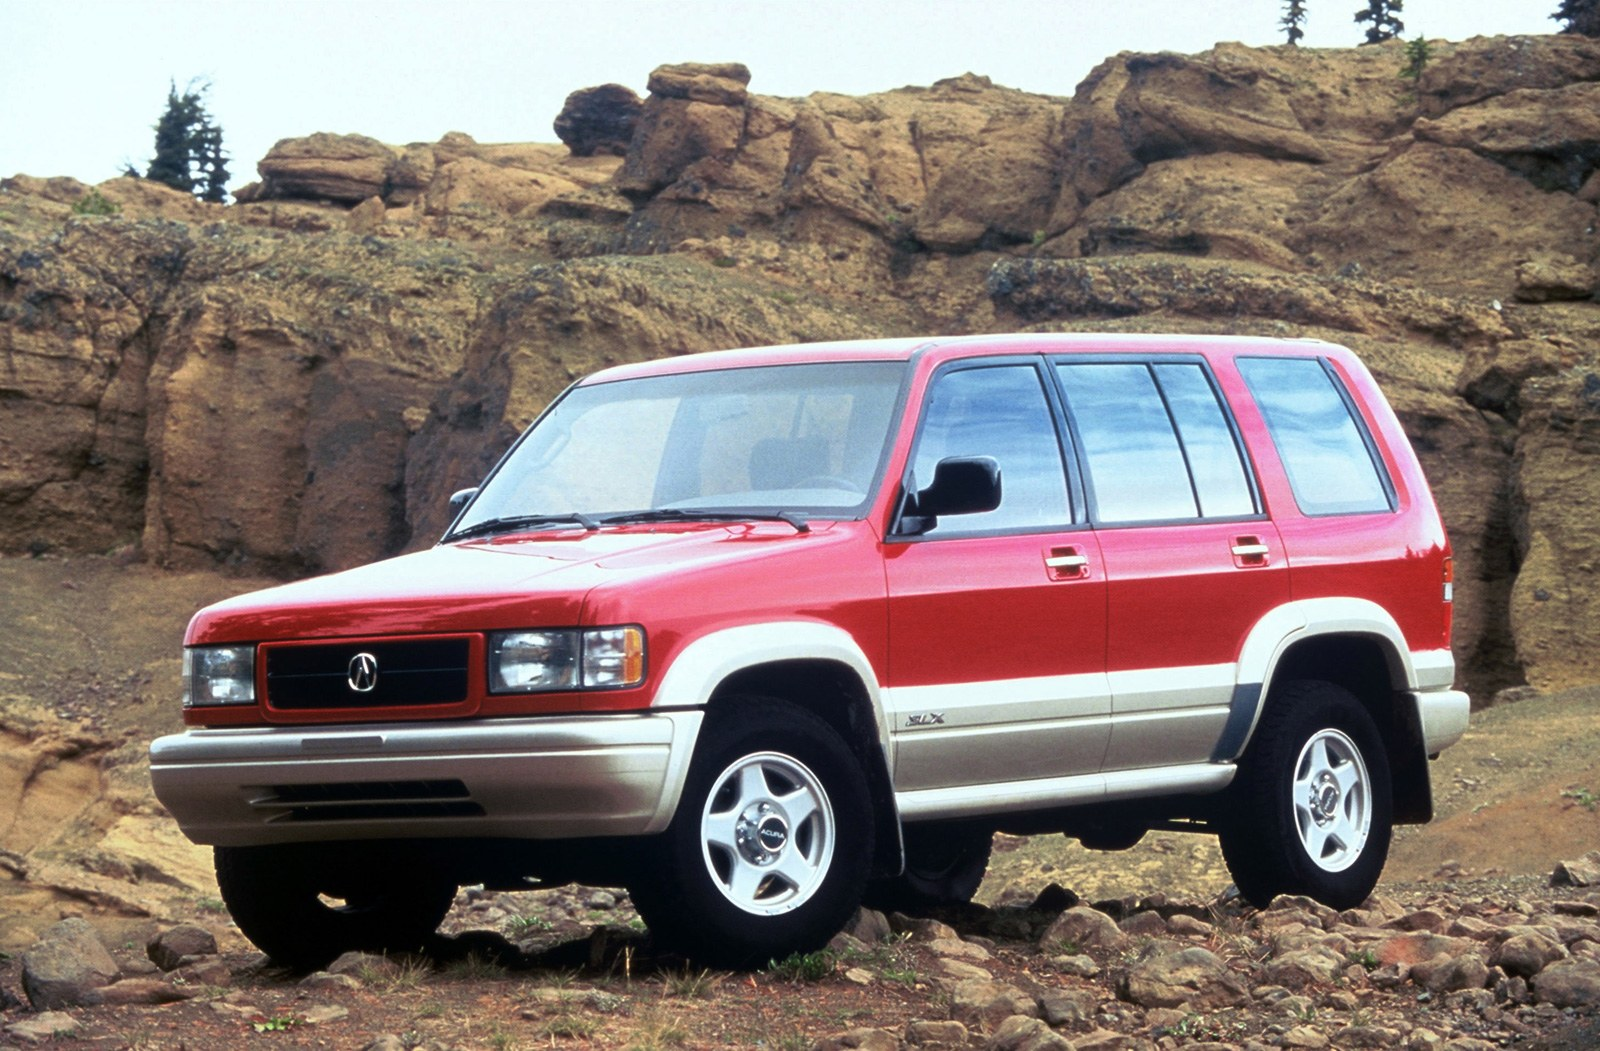 Top 10 Cars That Died Real Quick » AutoGuide.com News